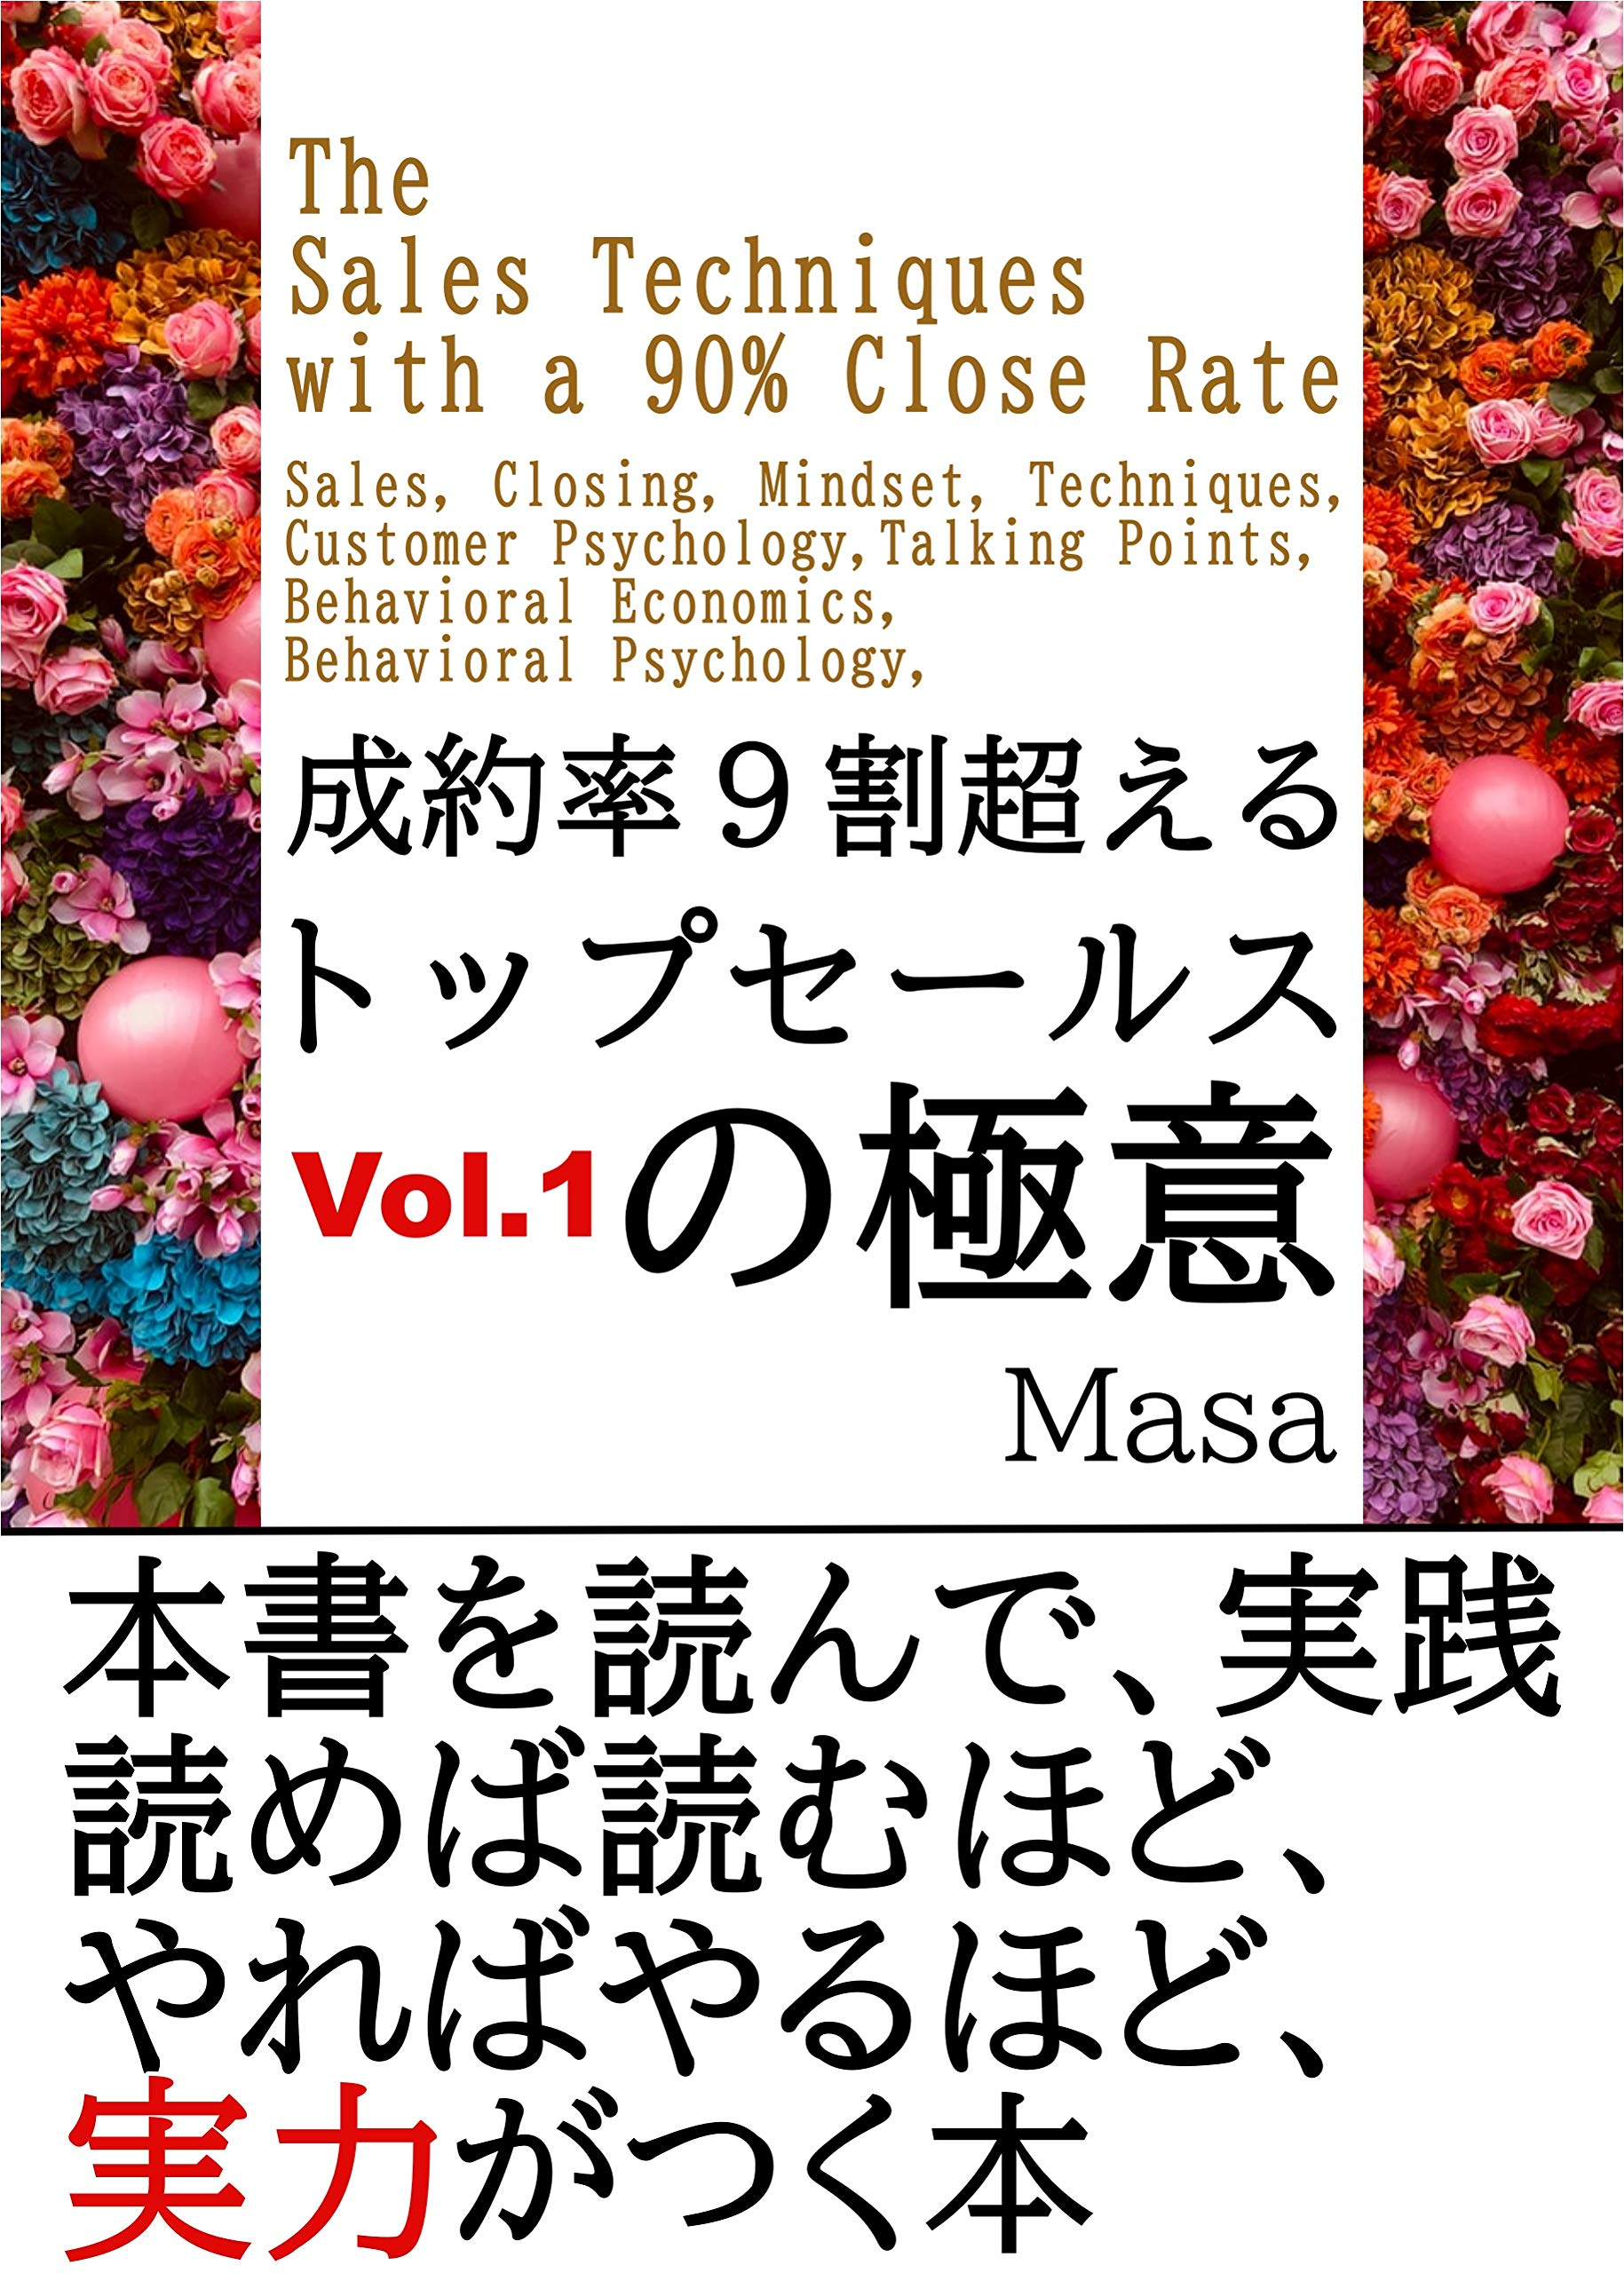 The Sales Techniques with a 90% Close Rate (Masa marketing) (Japanese Edition)